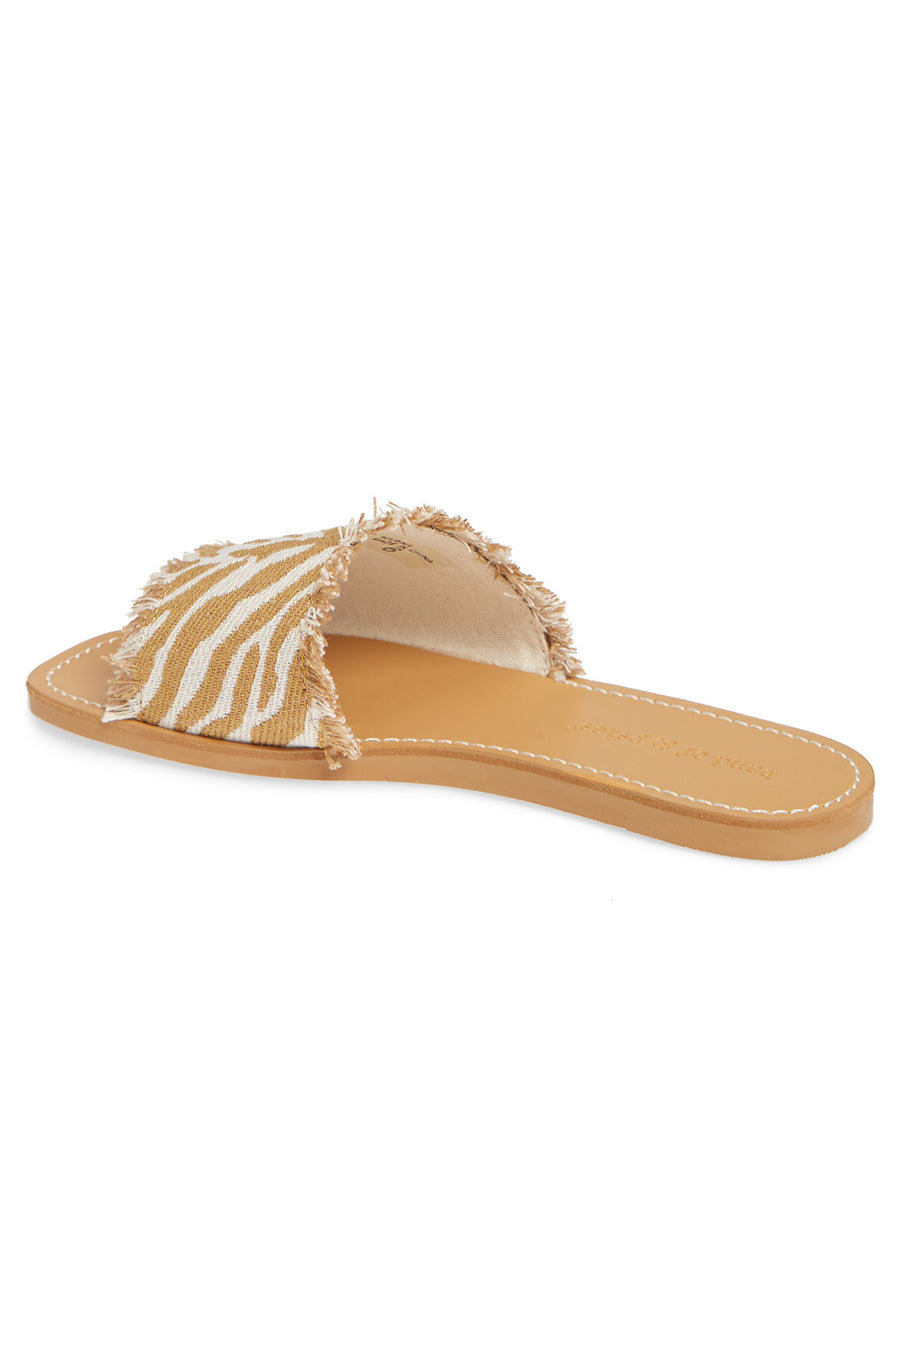 Marina Natural Zebra Woven Canvas Slide Sandal Master